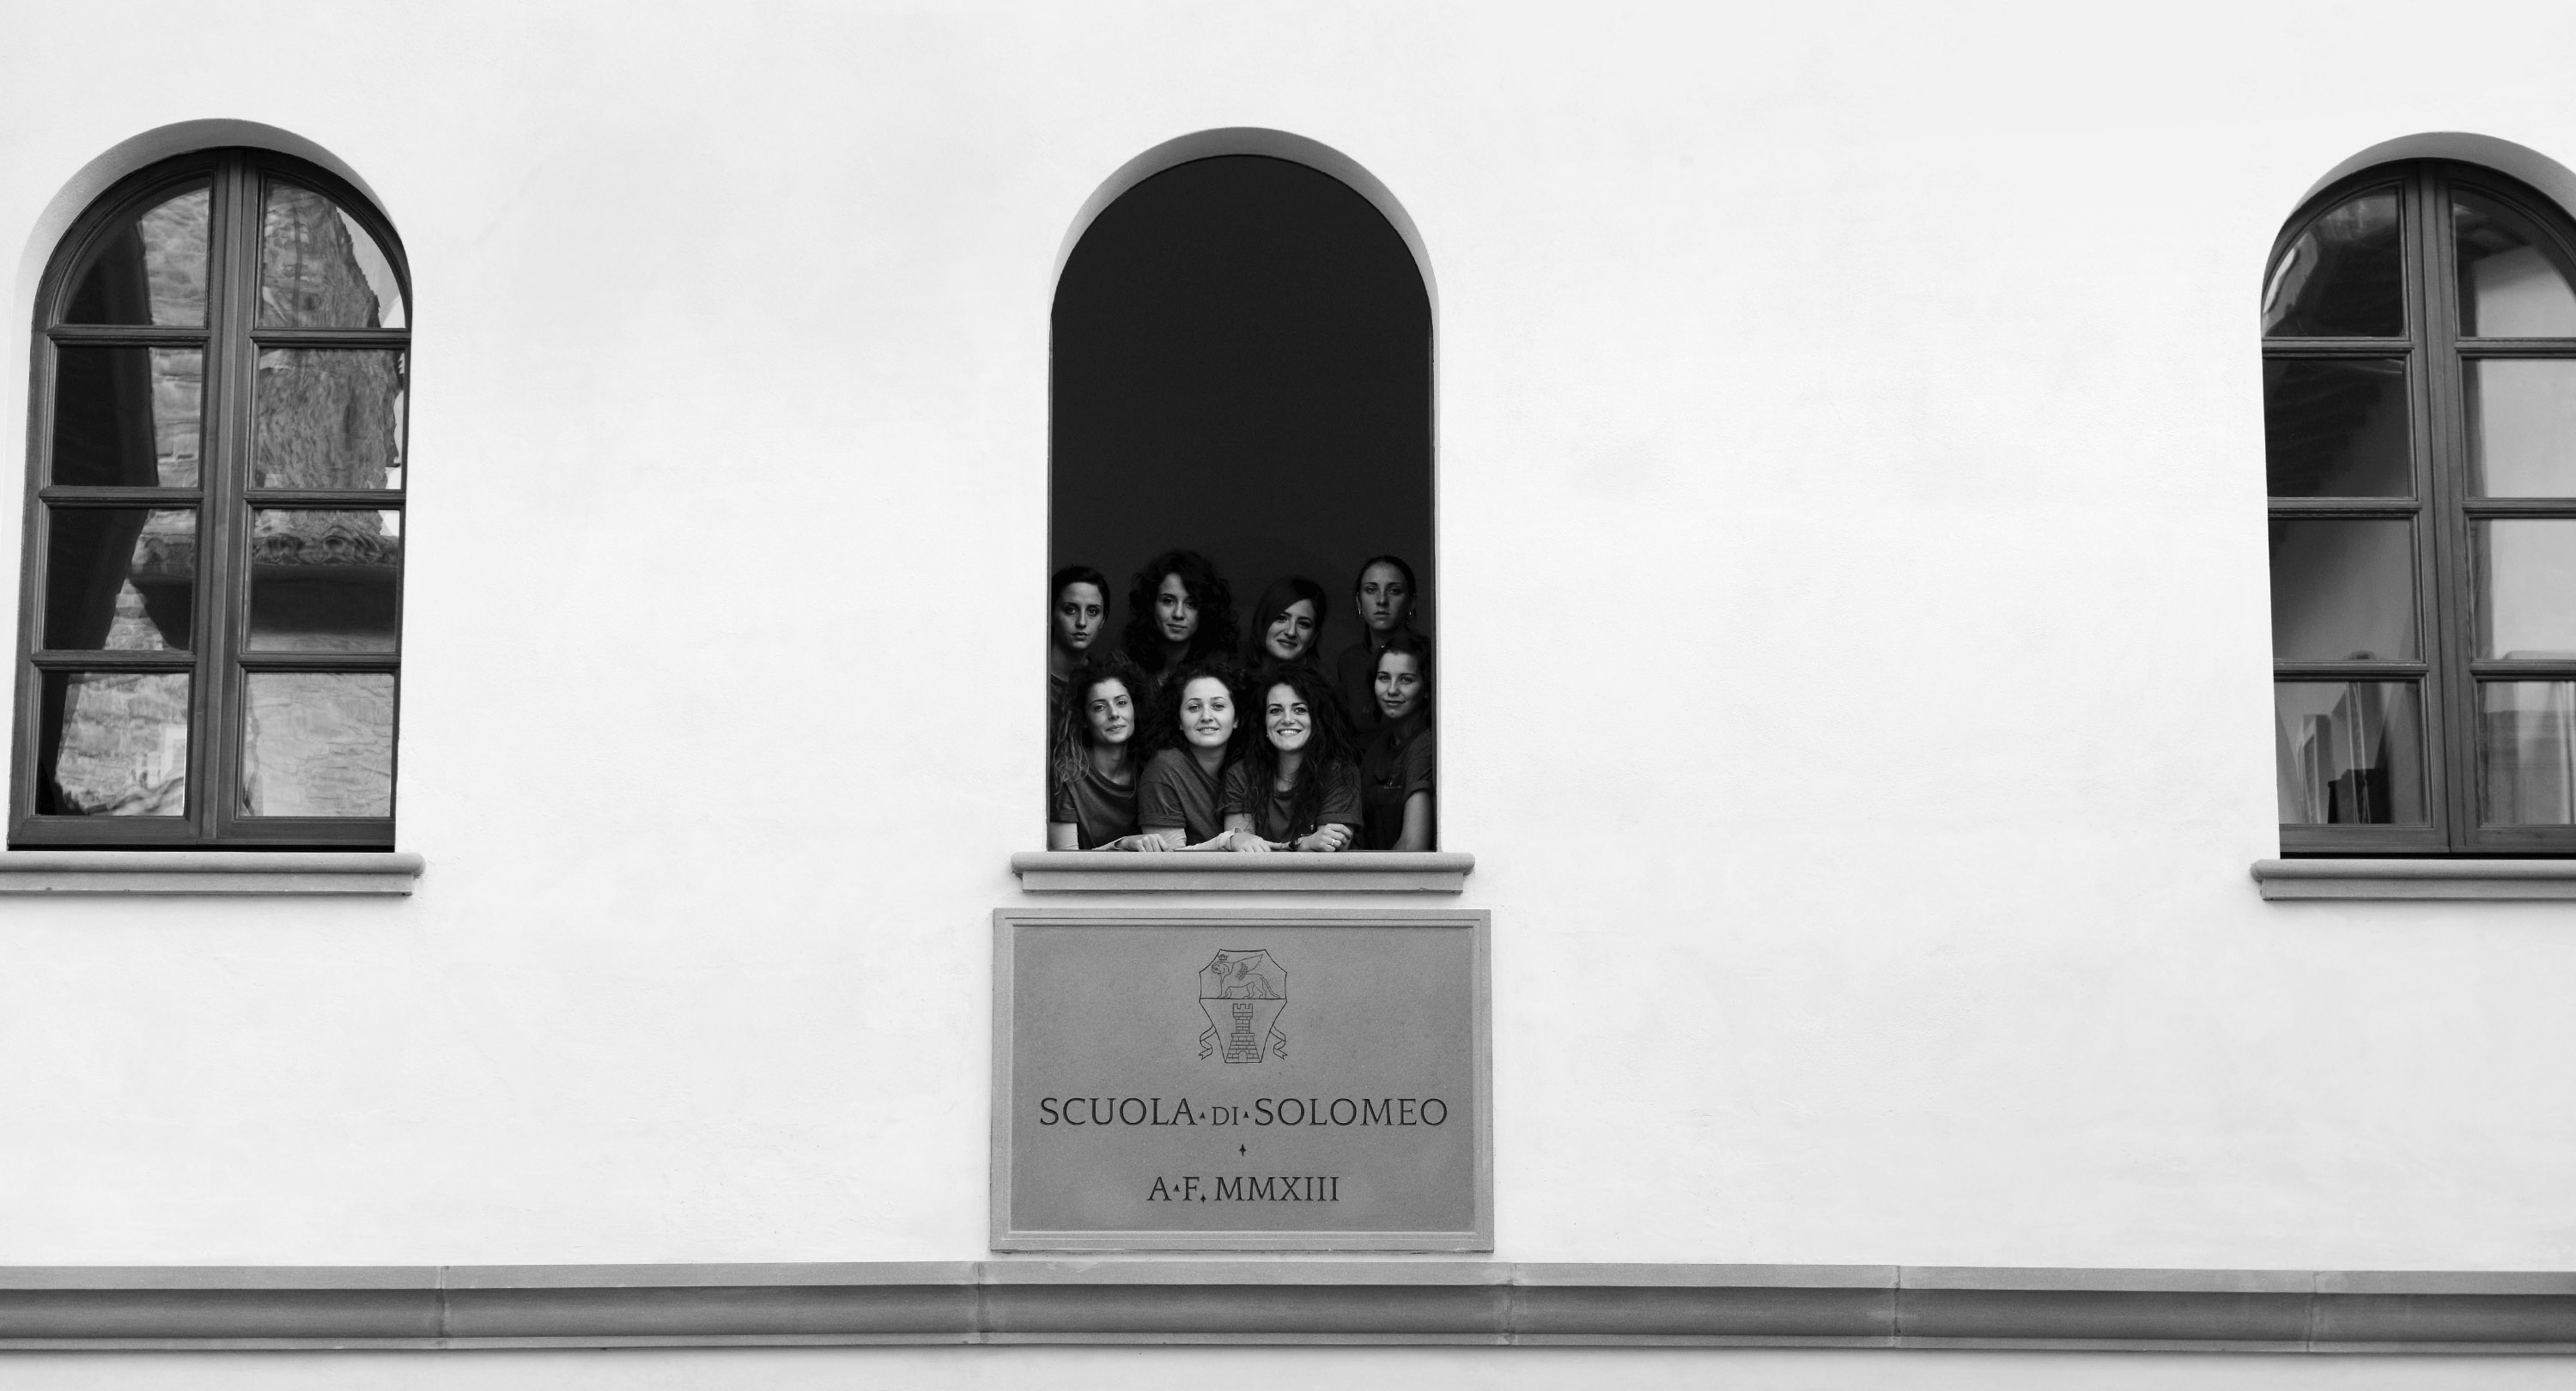 The School of Solomeo